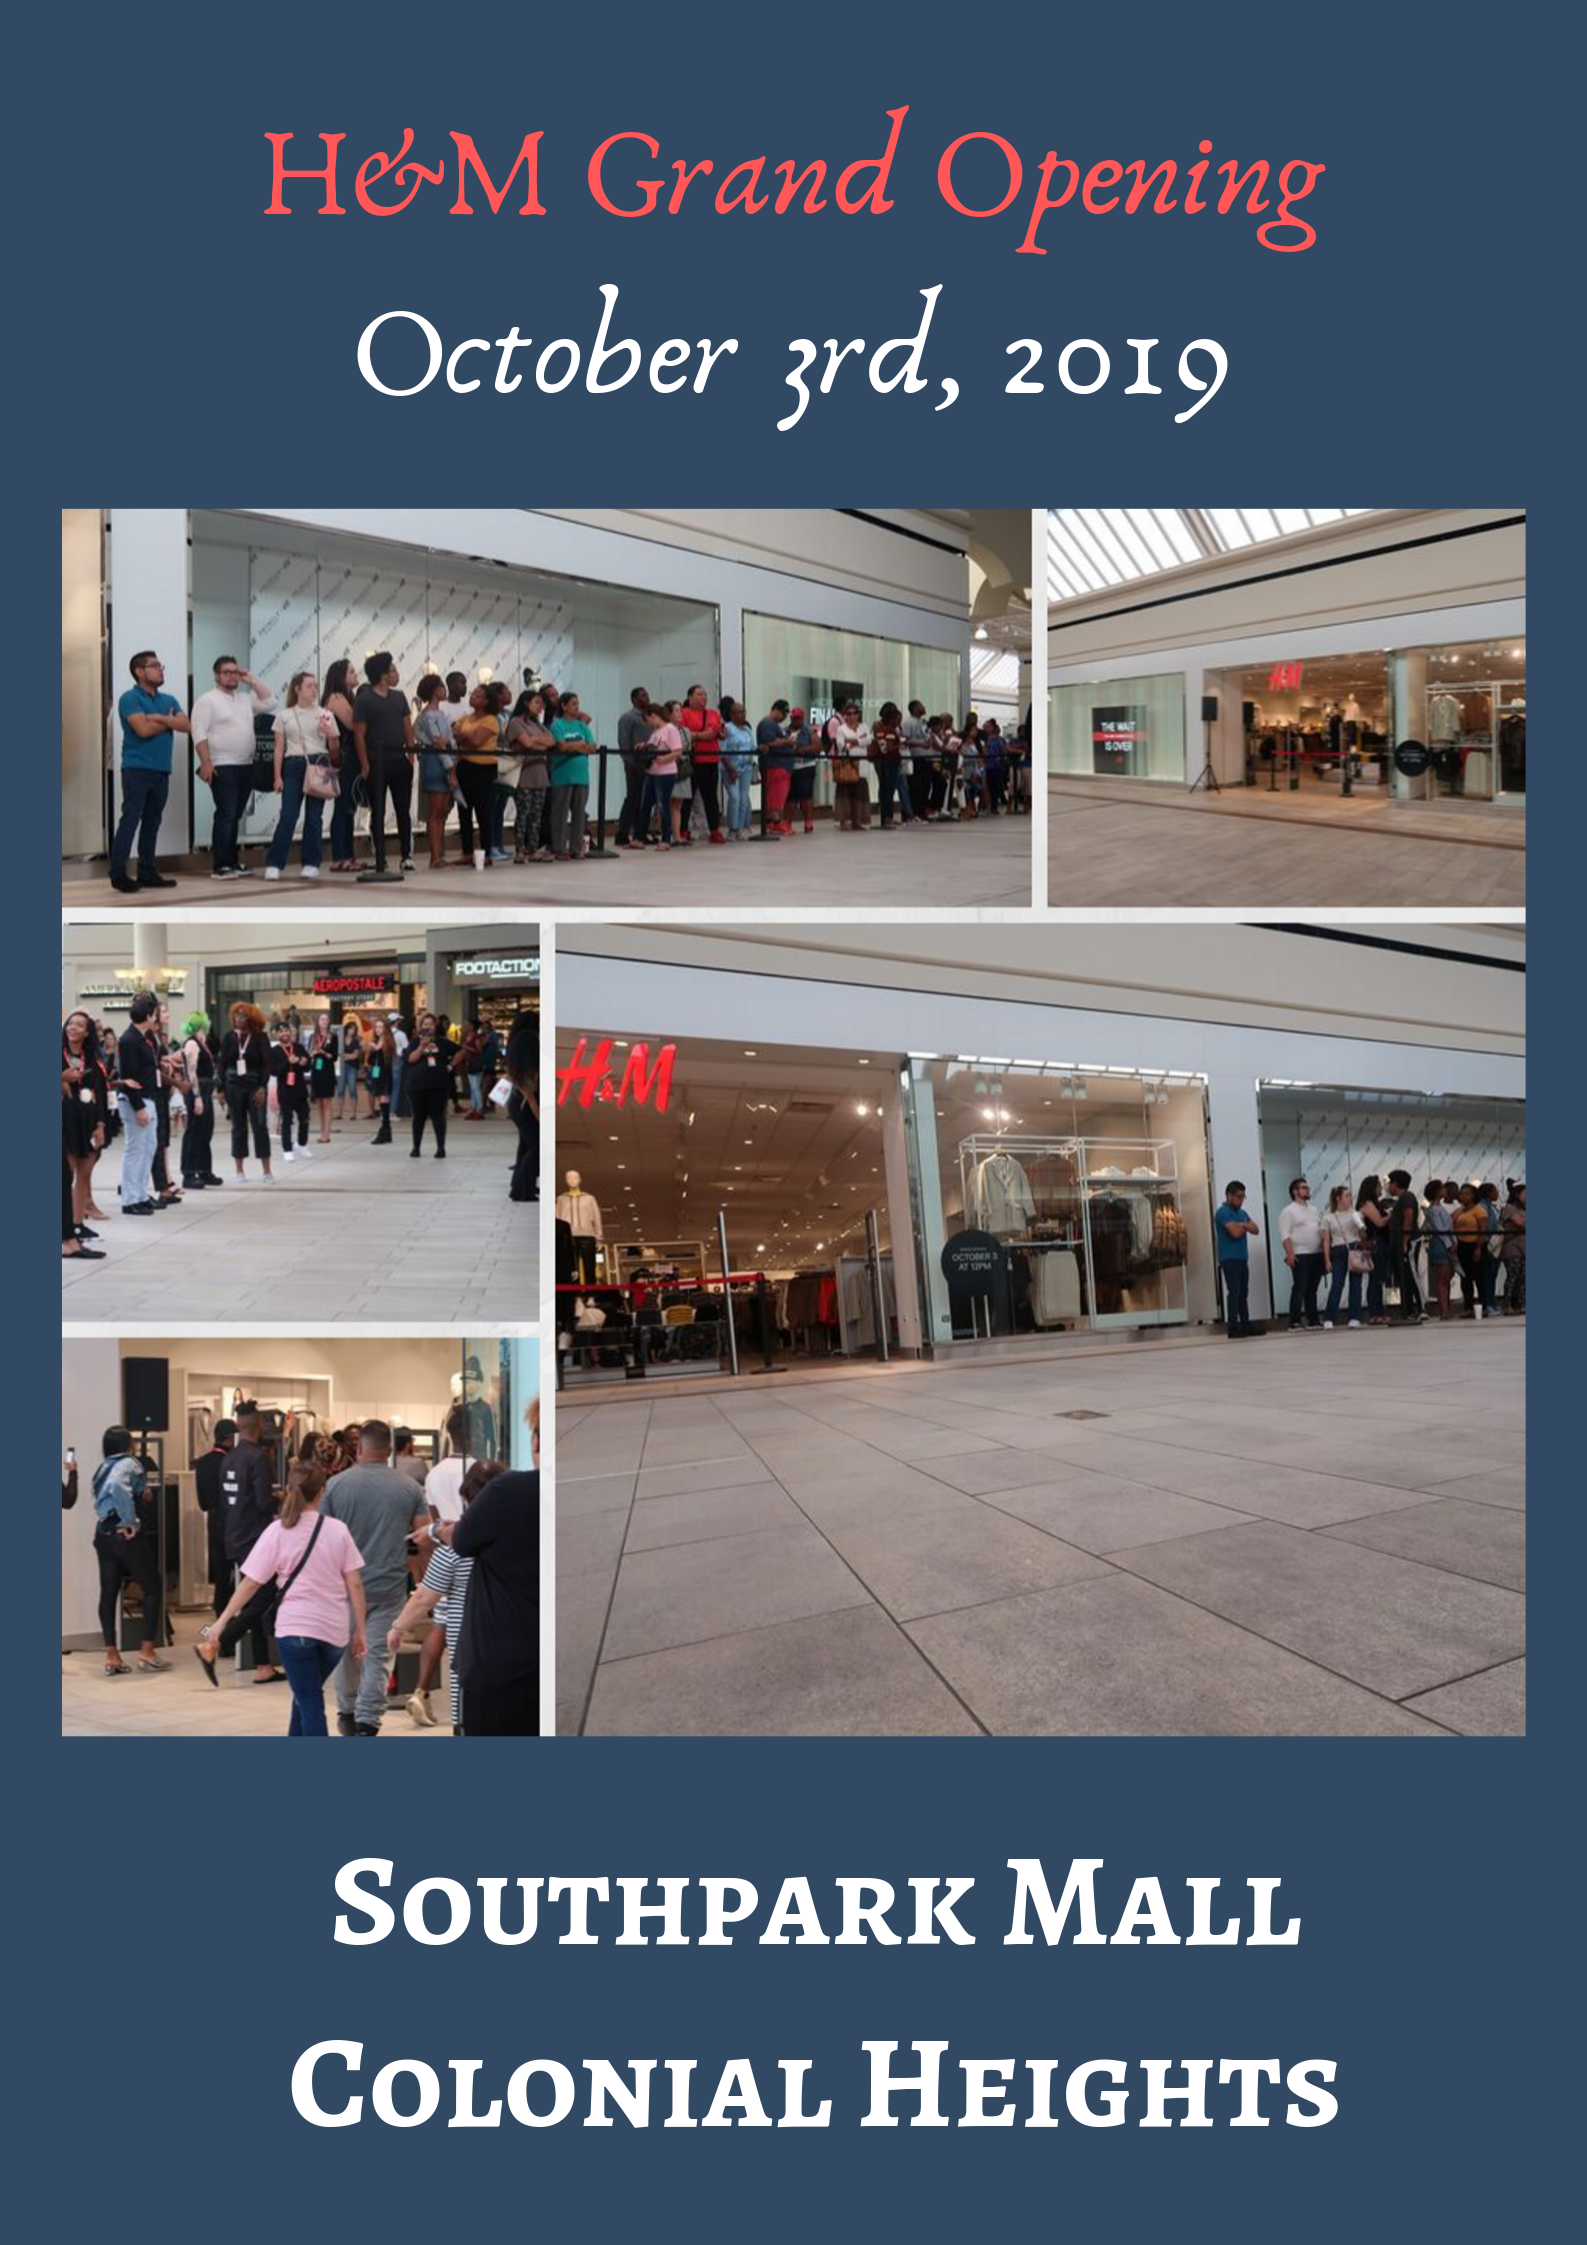 Pictures from the Grand Opening of H&M at Southpark Mall on October 3rd.